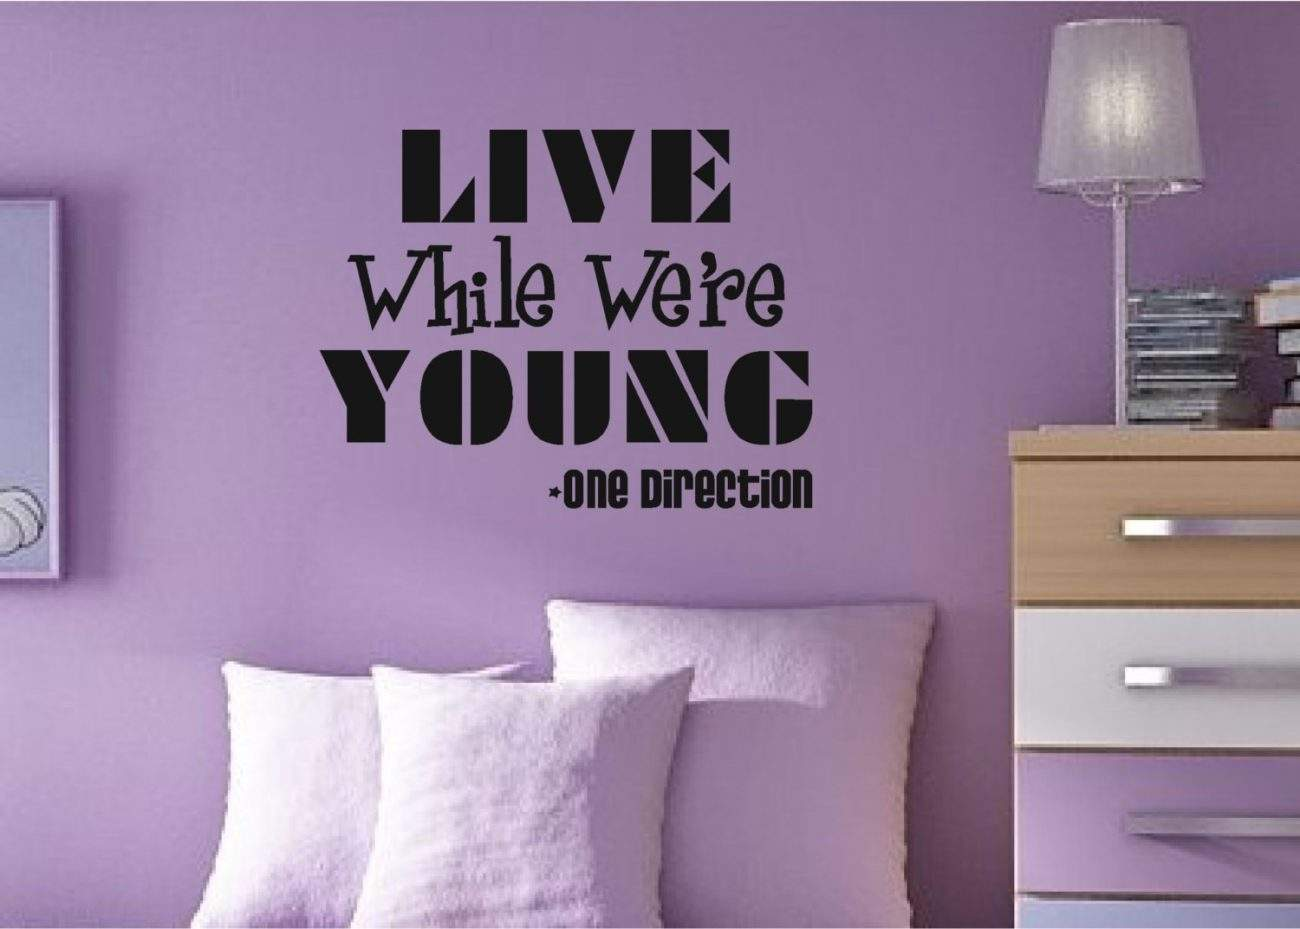 Live while were young wall decal